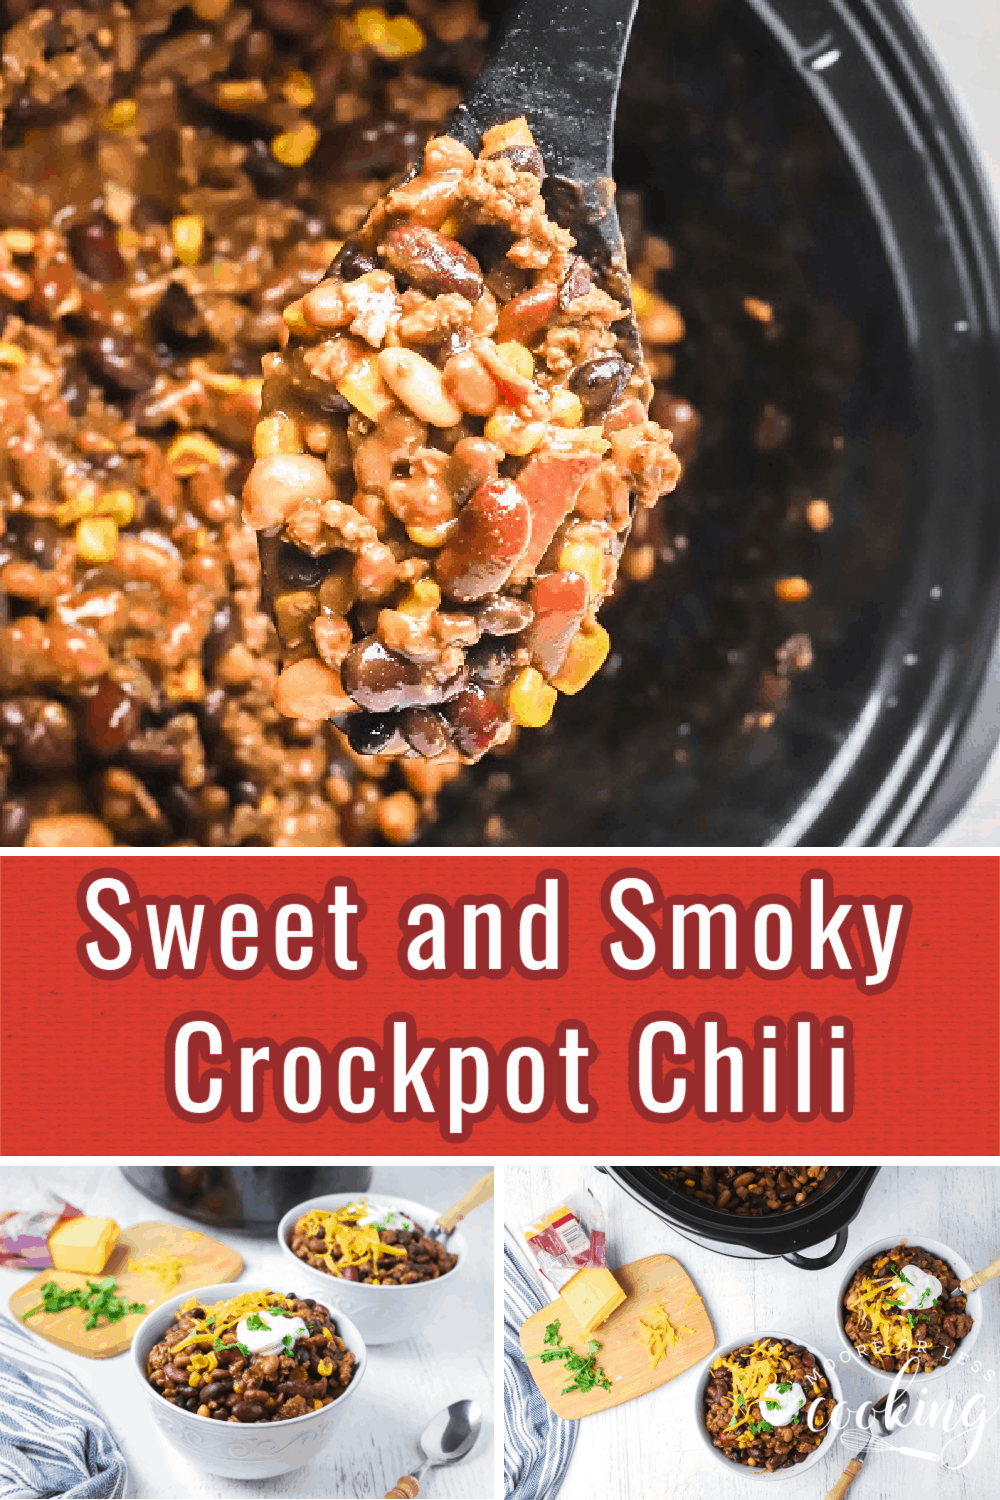 Sweet and Smoky Crockpot Chili (2)